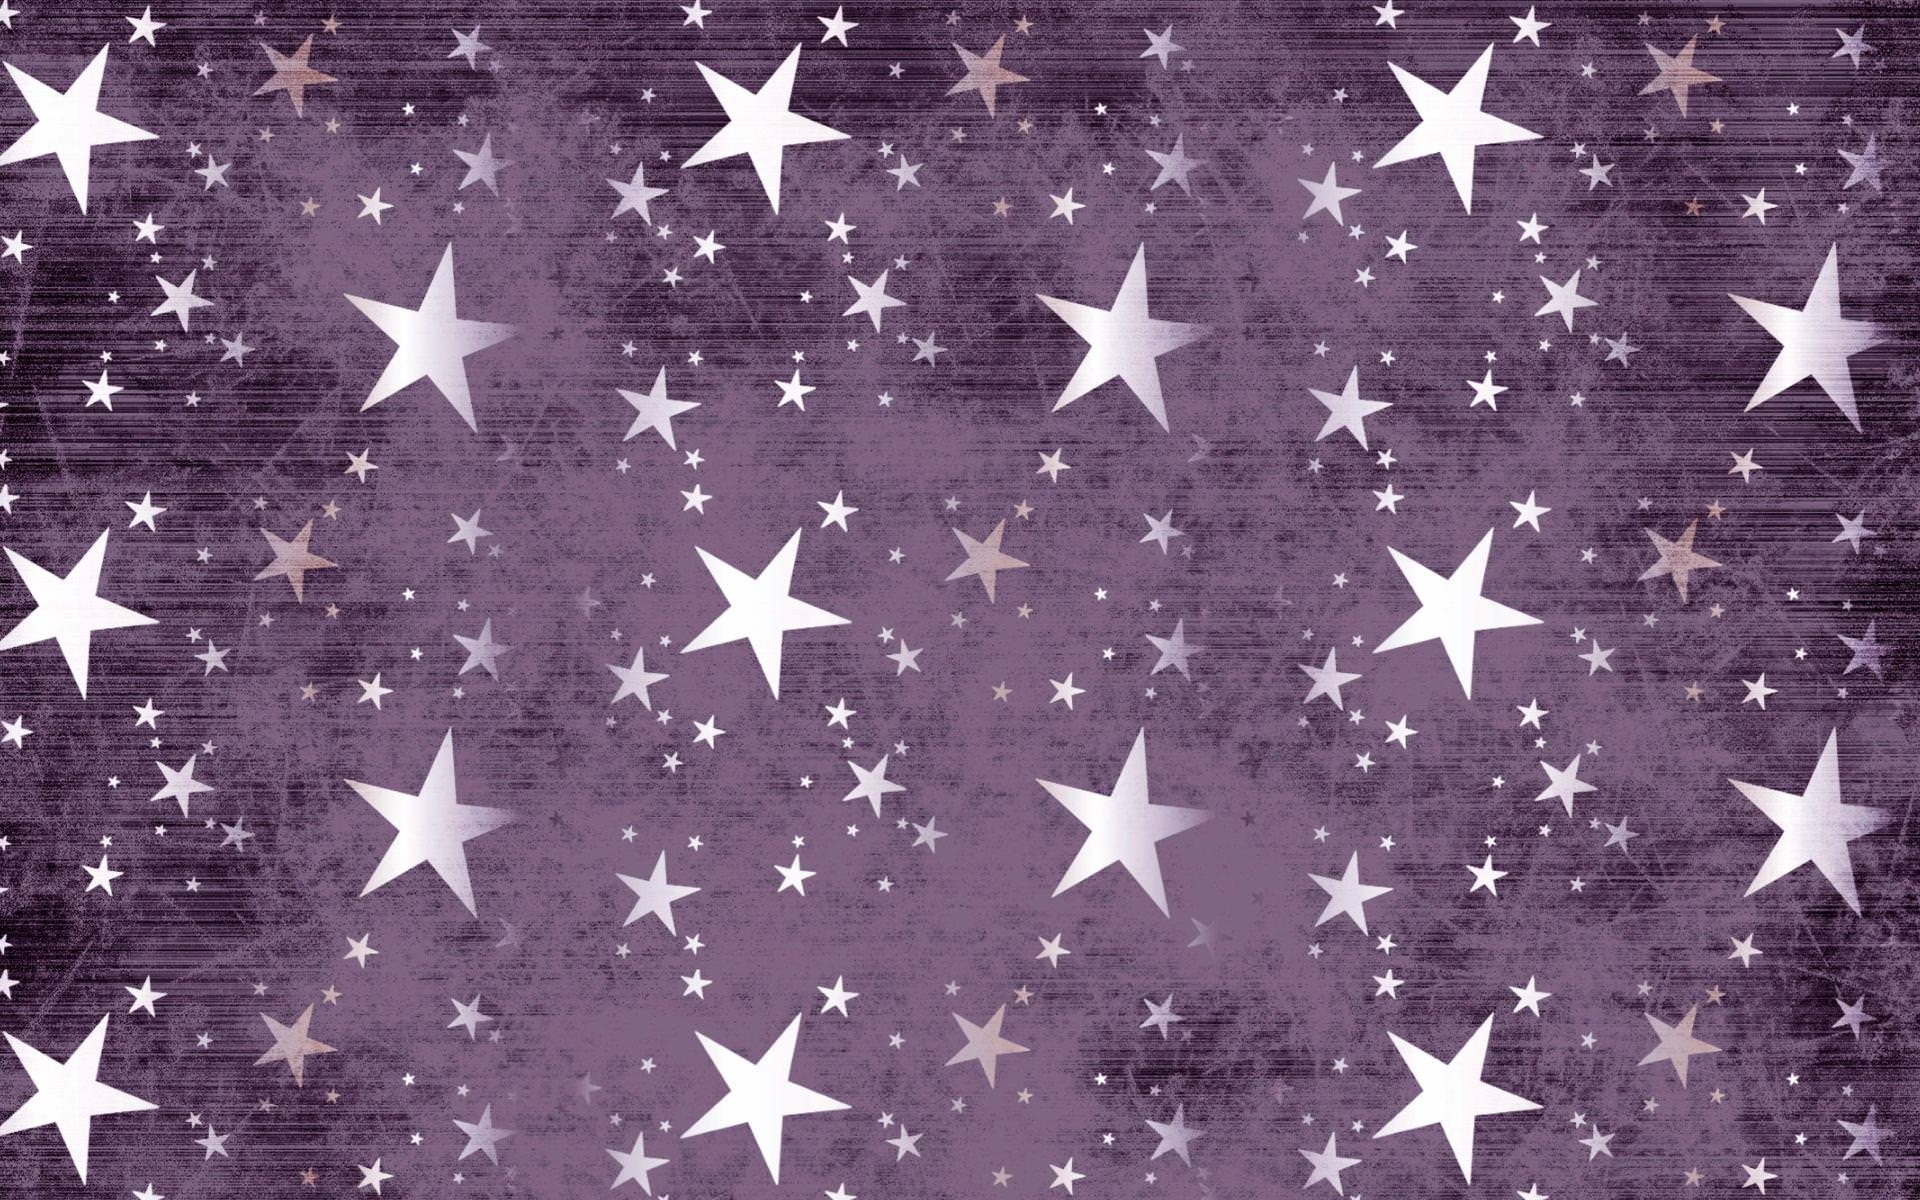 Star Texture Patterns